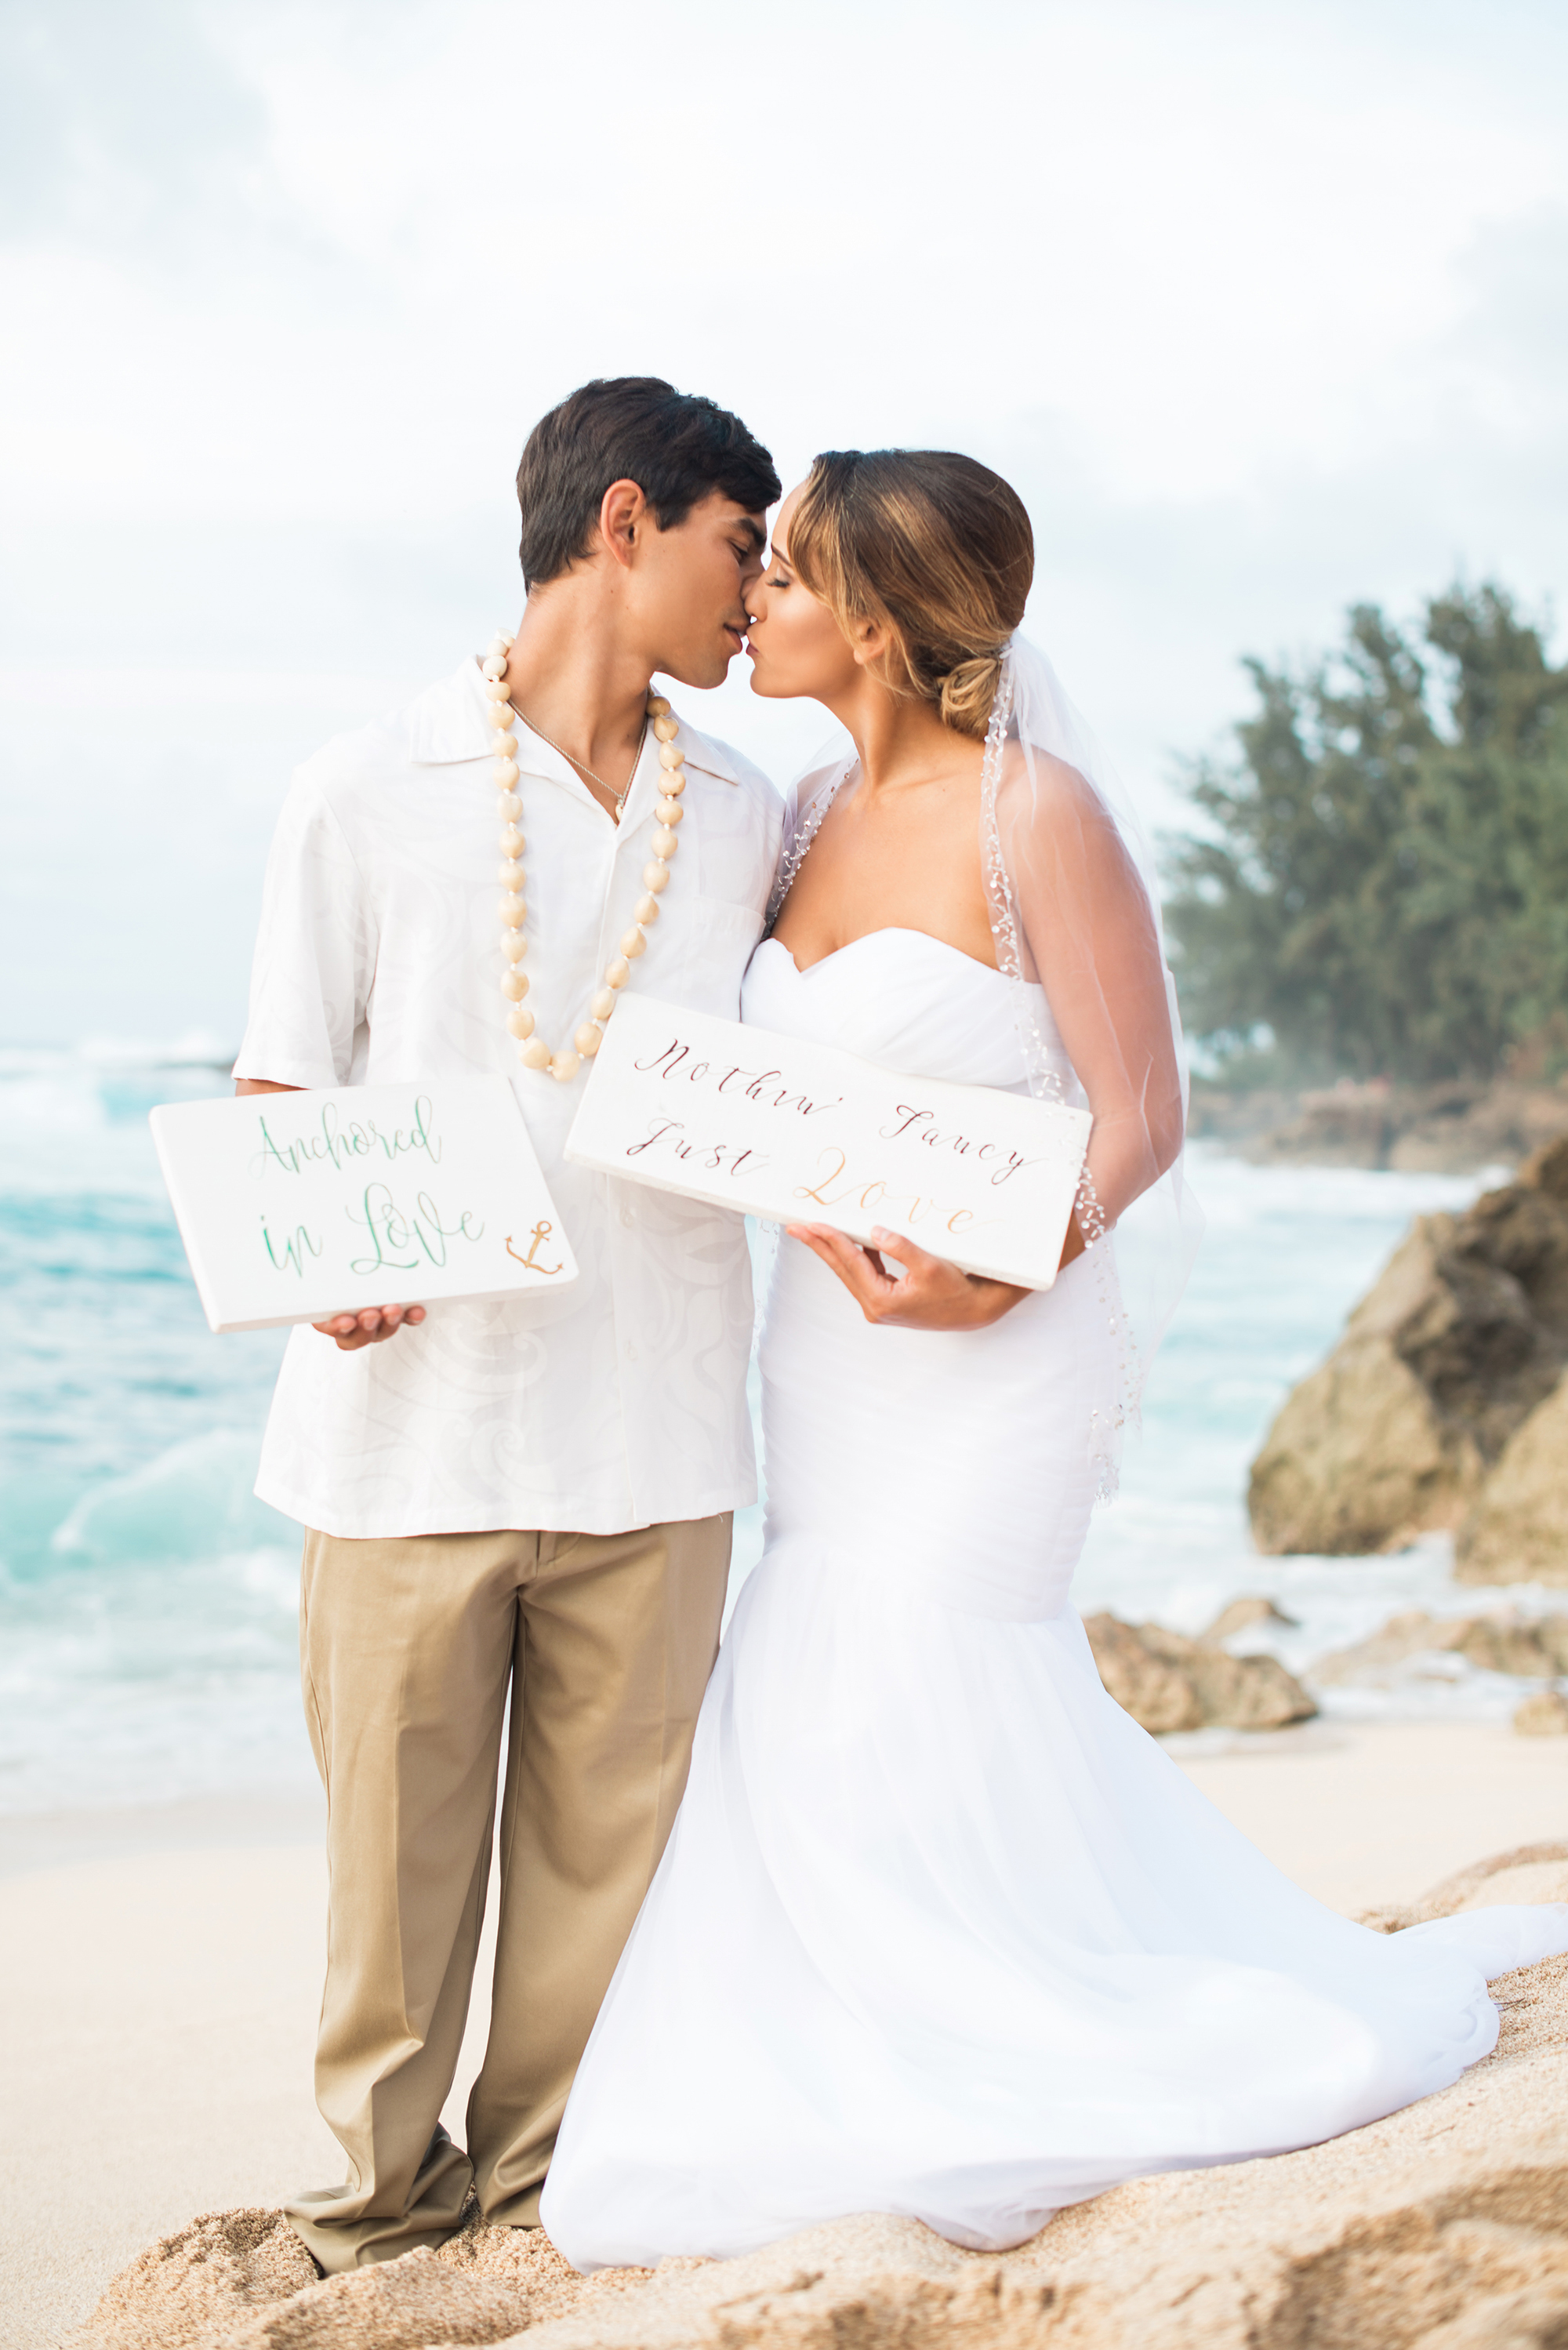 A Romantic Elopement in Hawaii on the island of Oahu - photo by Marianne Blackham Photography - see more on www.BrendasWeddingBlog.com